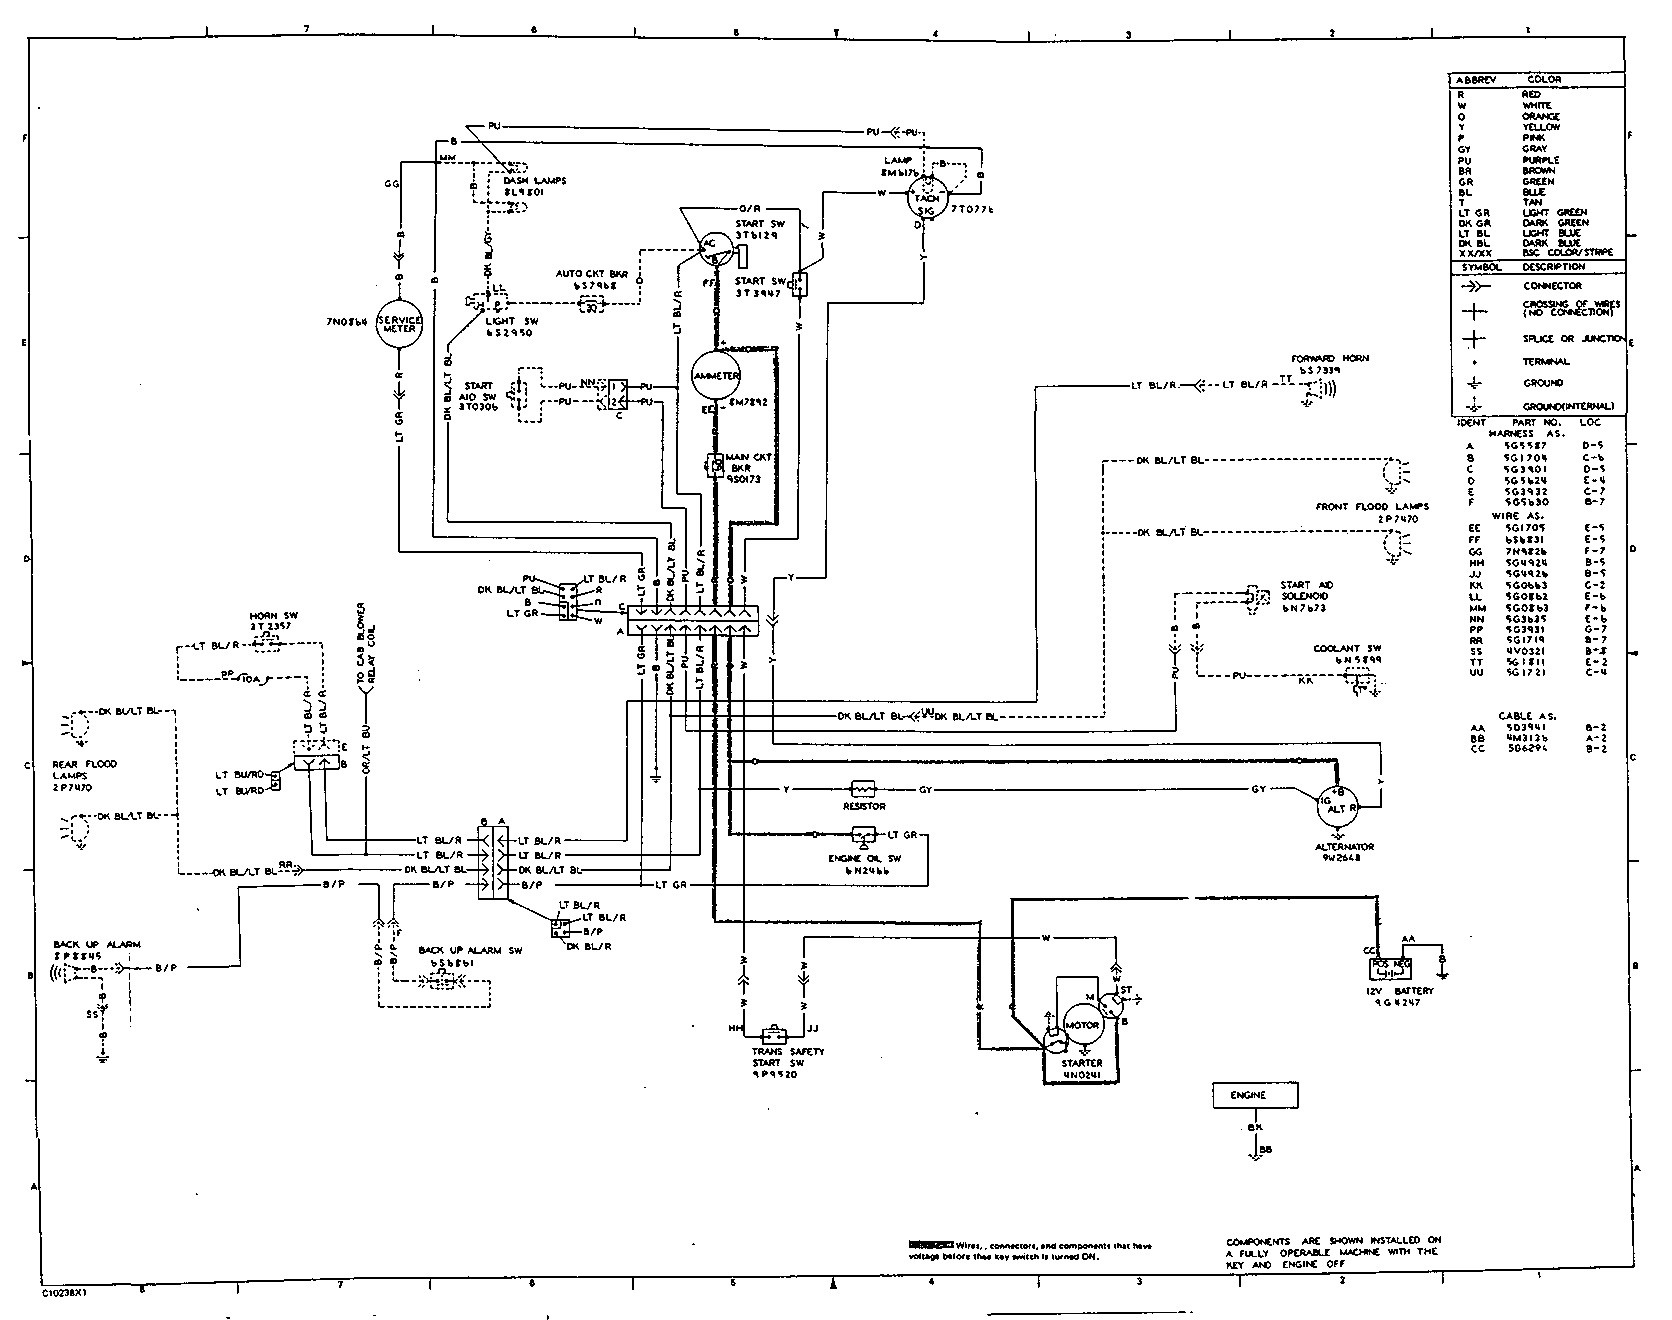 Cat C15 Engine Diagram Caterpillar Diesel Generator Manual Pdf Win S Online